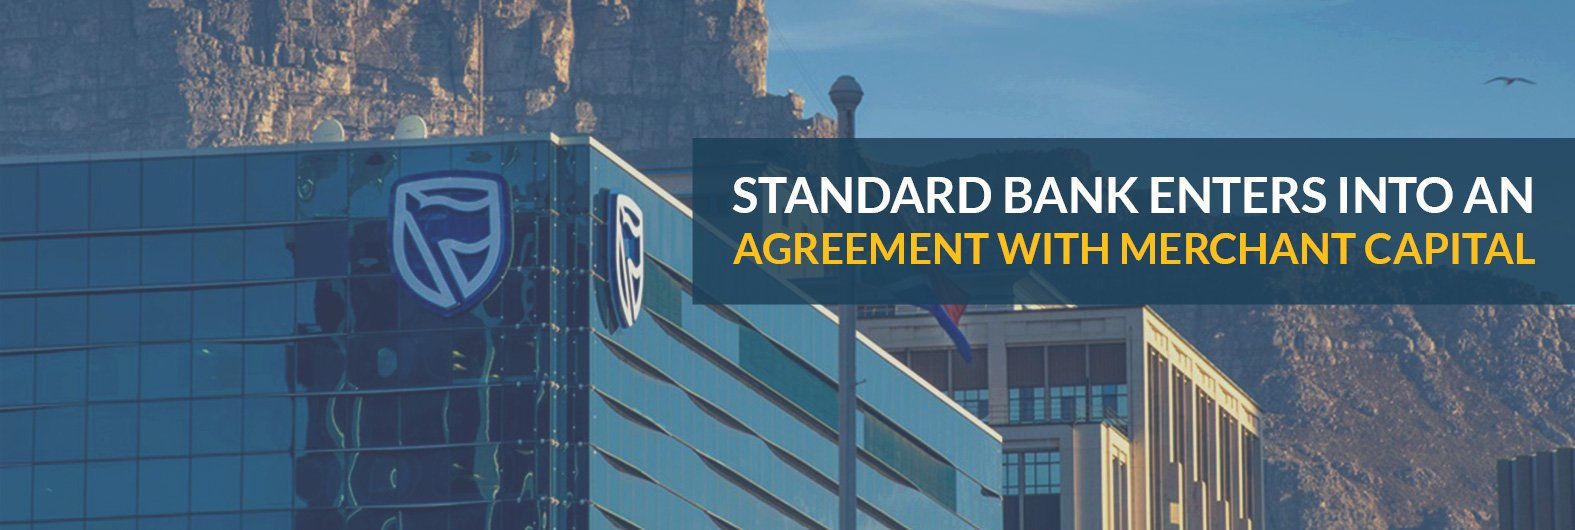 Standard Bank enters into an agreement with Merchant Capital to provide specialised SME lending solution